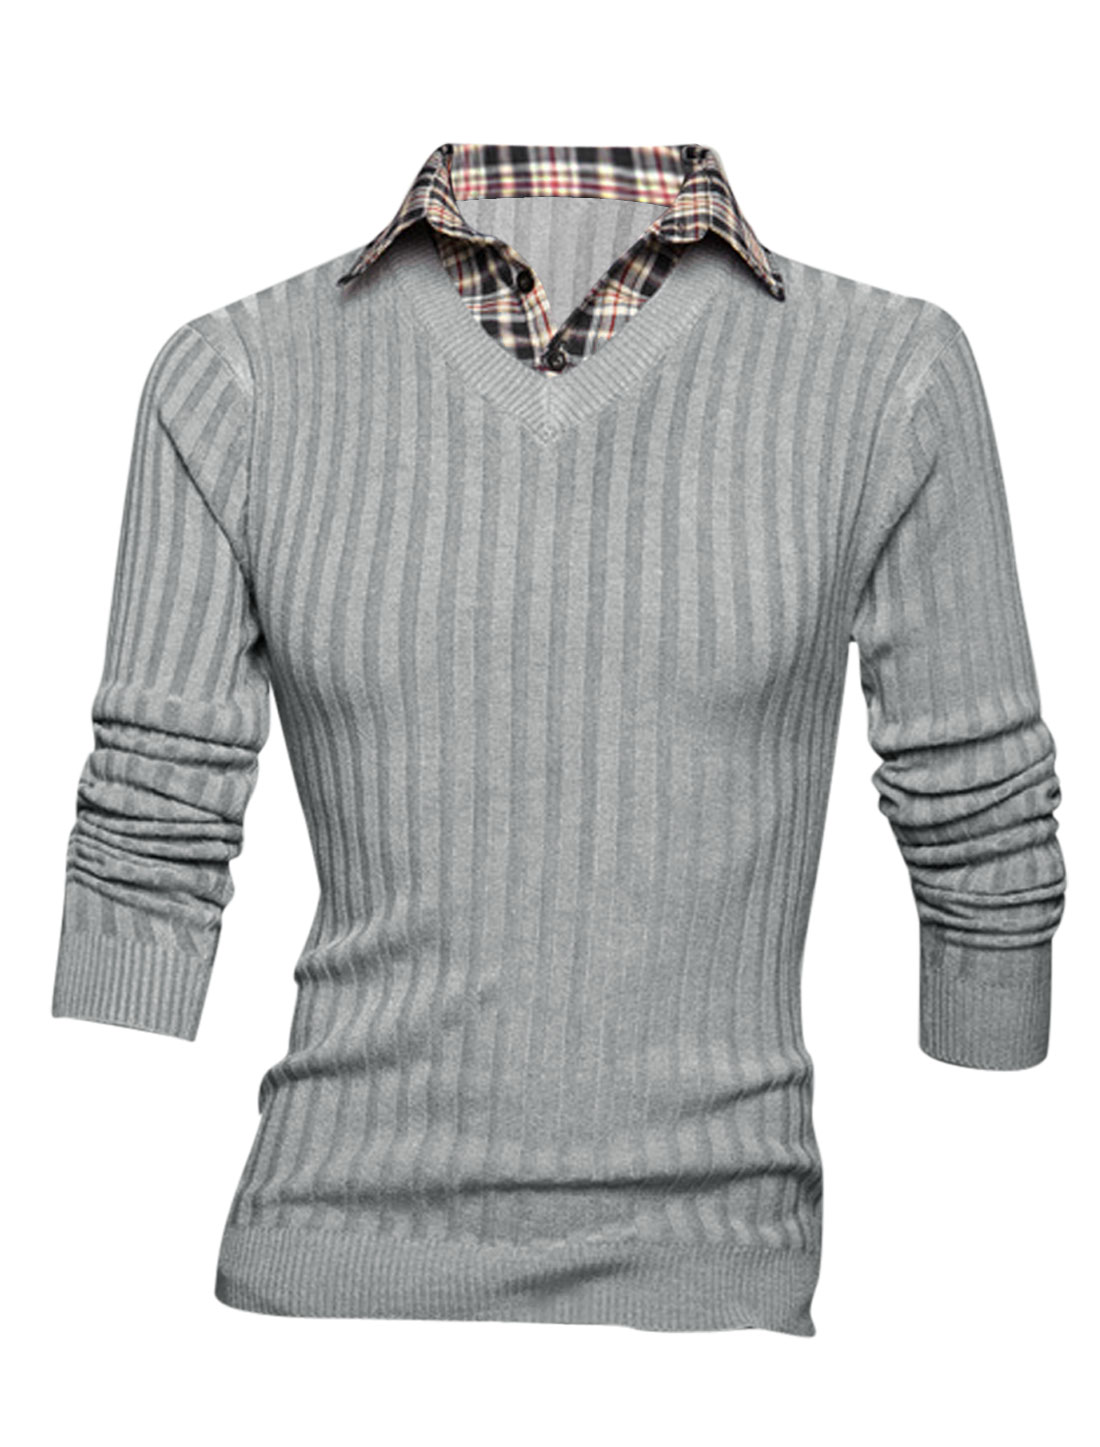 Men Long Sleeve Layered Designs Plaids Stitched Design Knit Shirt Light Gray M